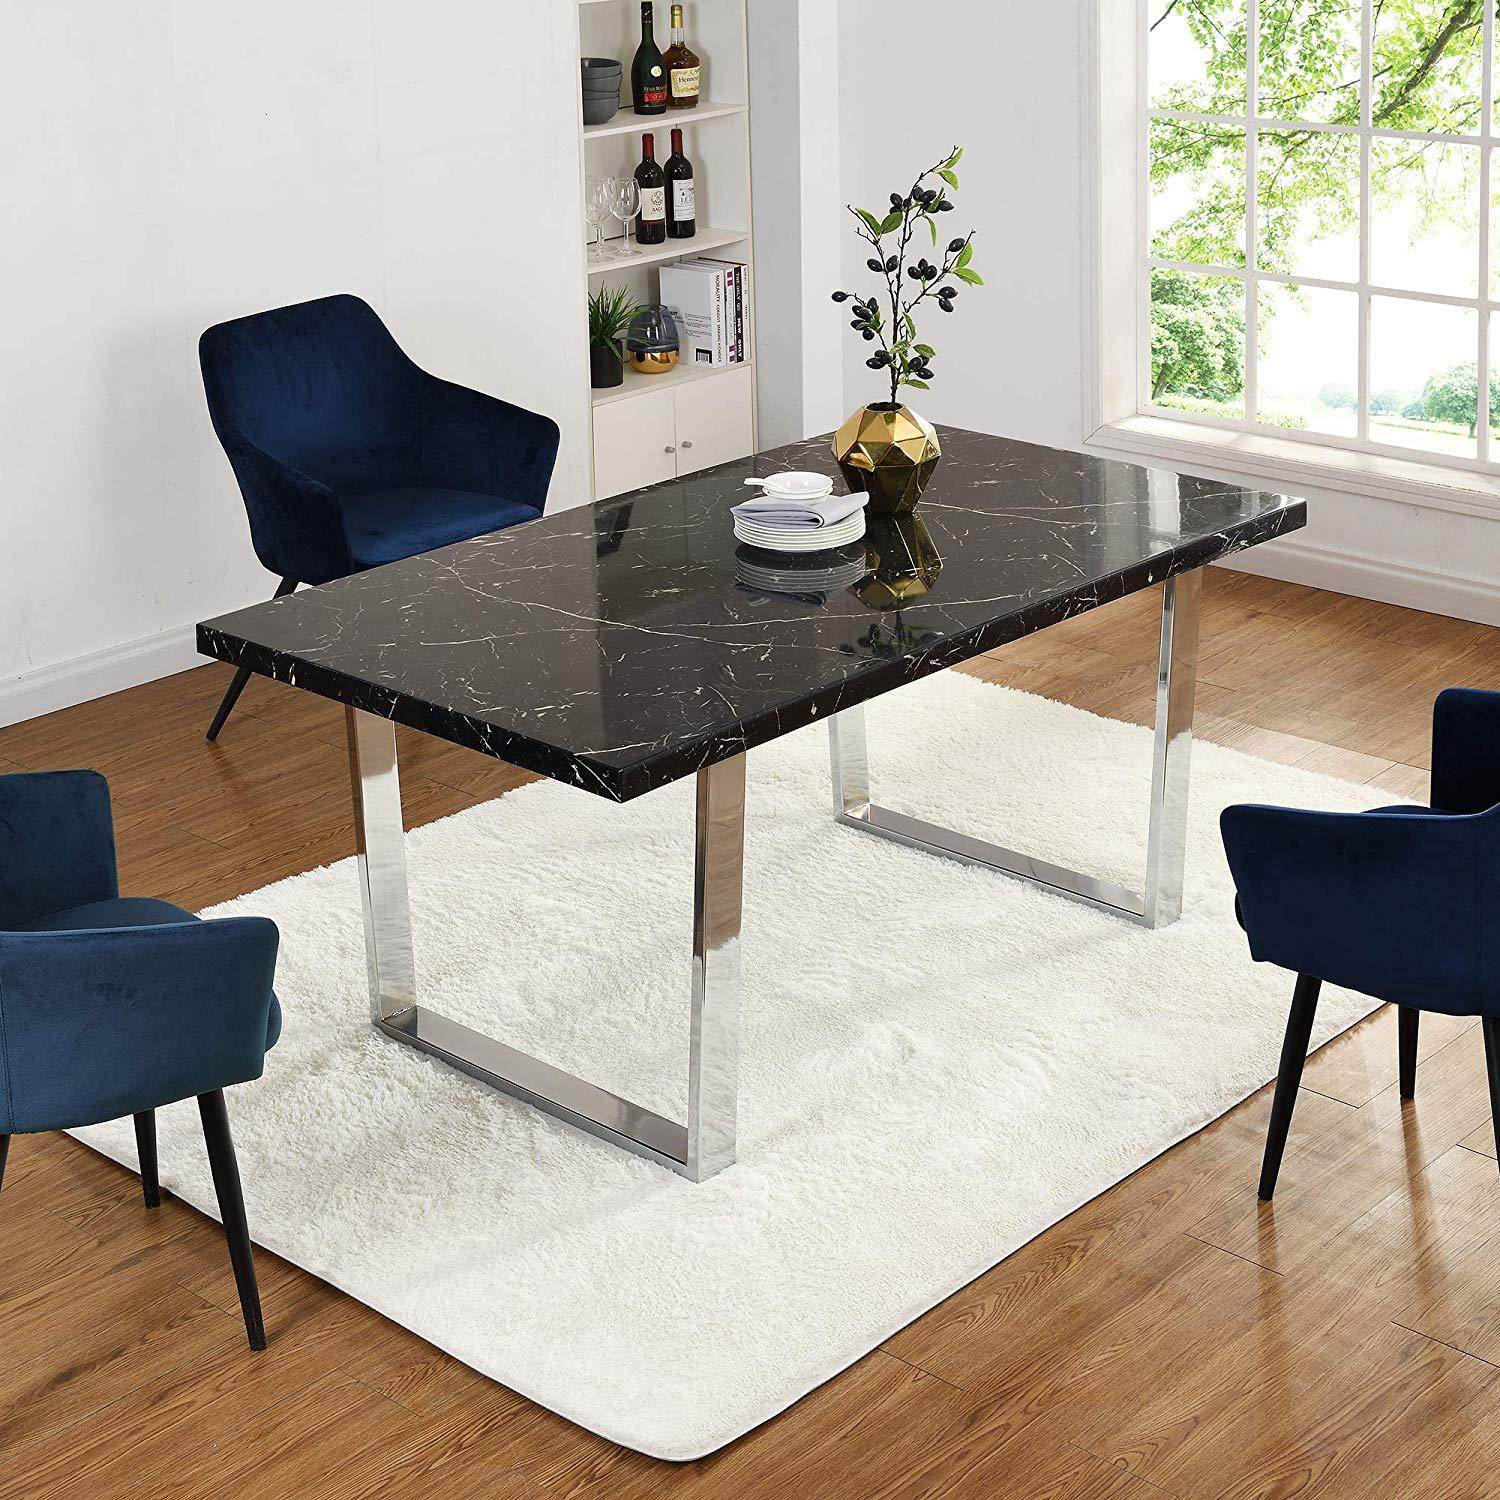 biasca 6seater high gloss marble effect dining table with